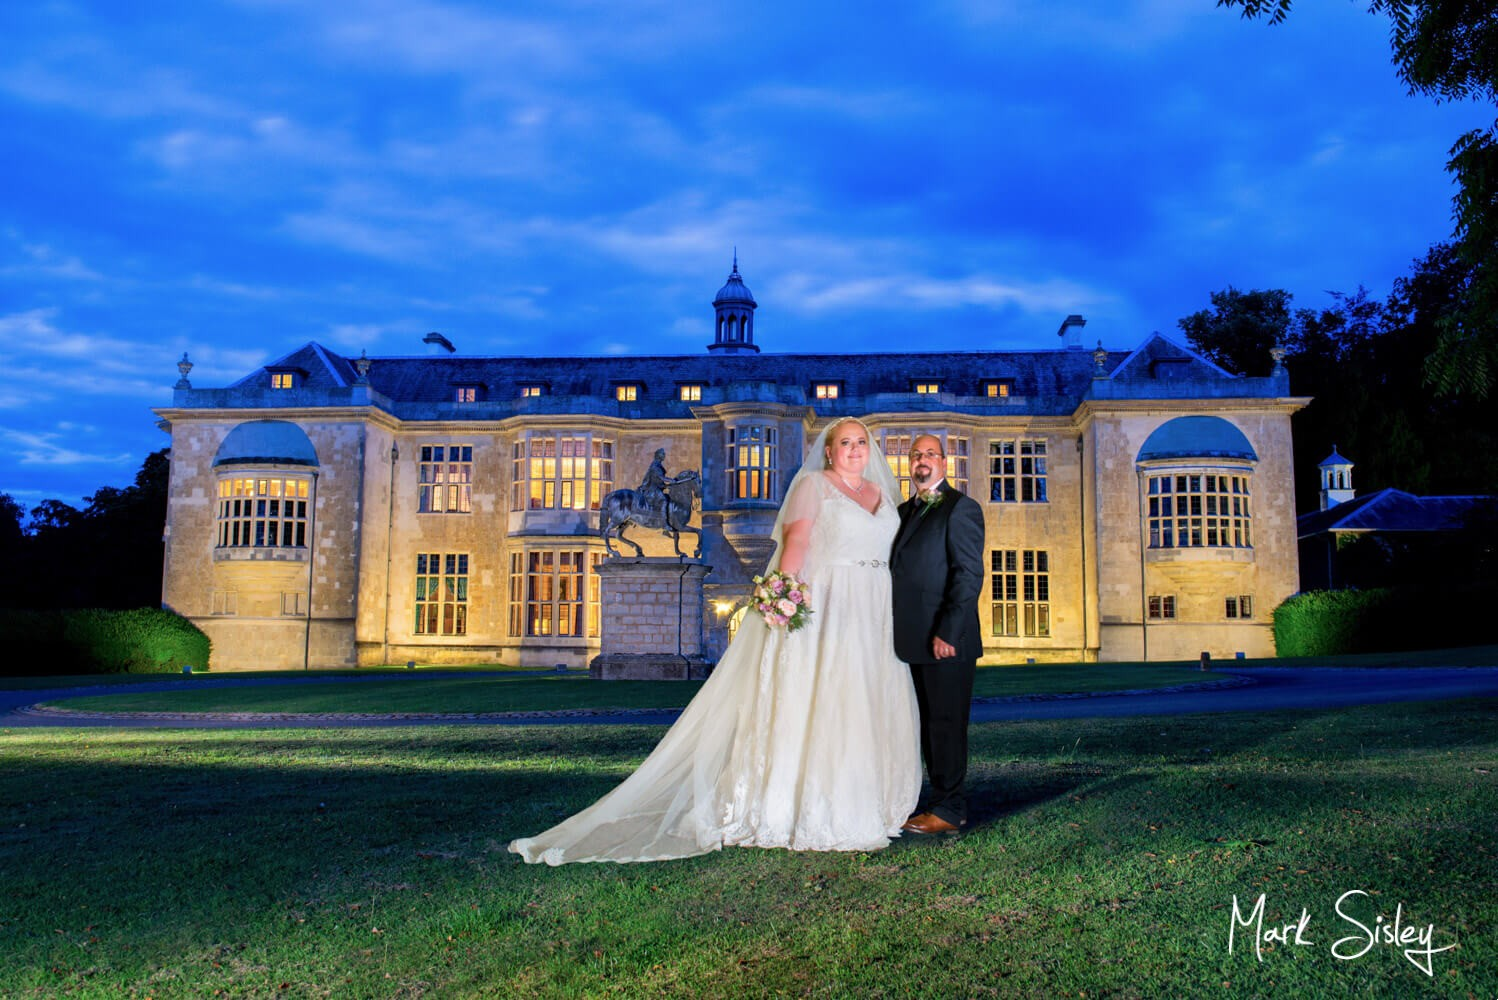 Hartwell House autumn wedding photography under dusky skies